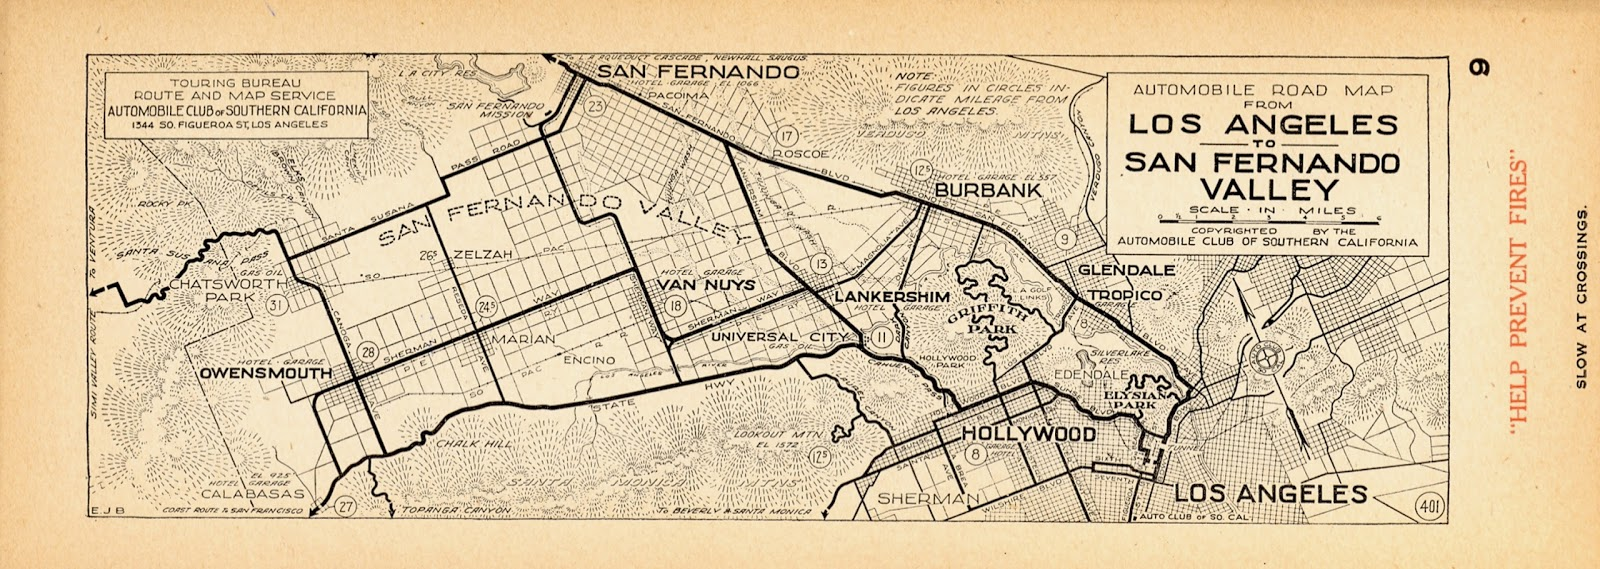 The Museum of the San Fernando Valley RARE OLD AUTO CLUB MAP ...